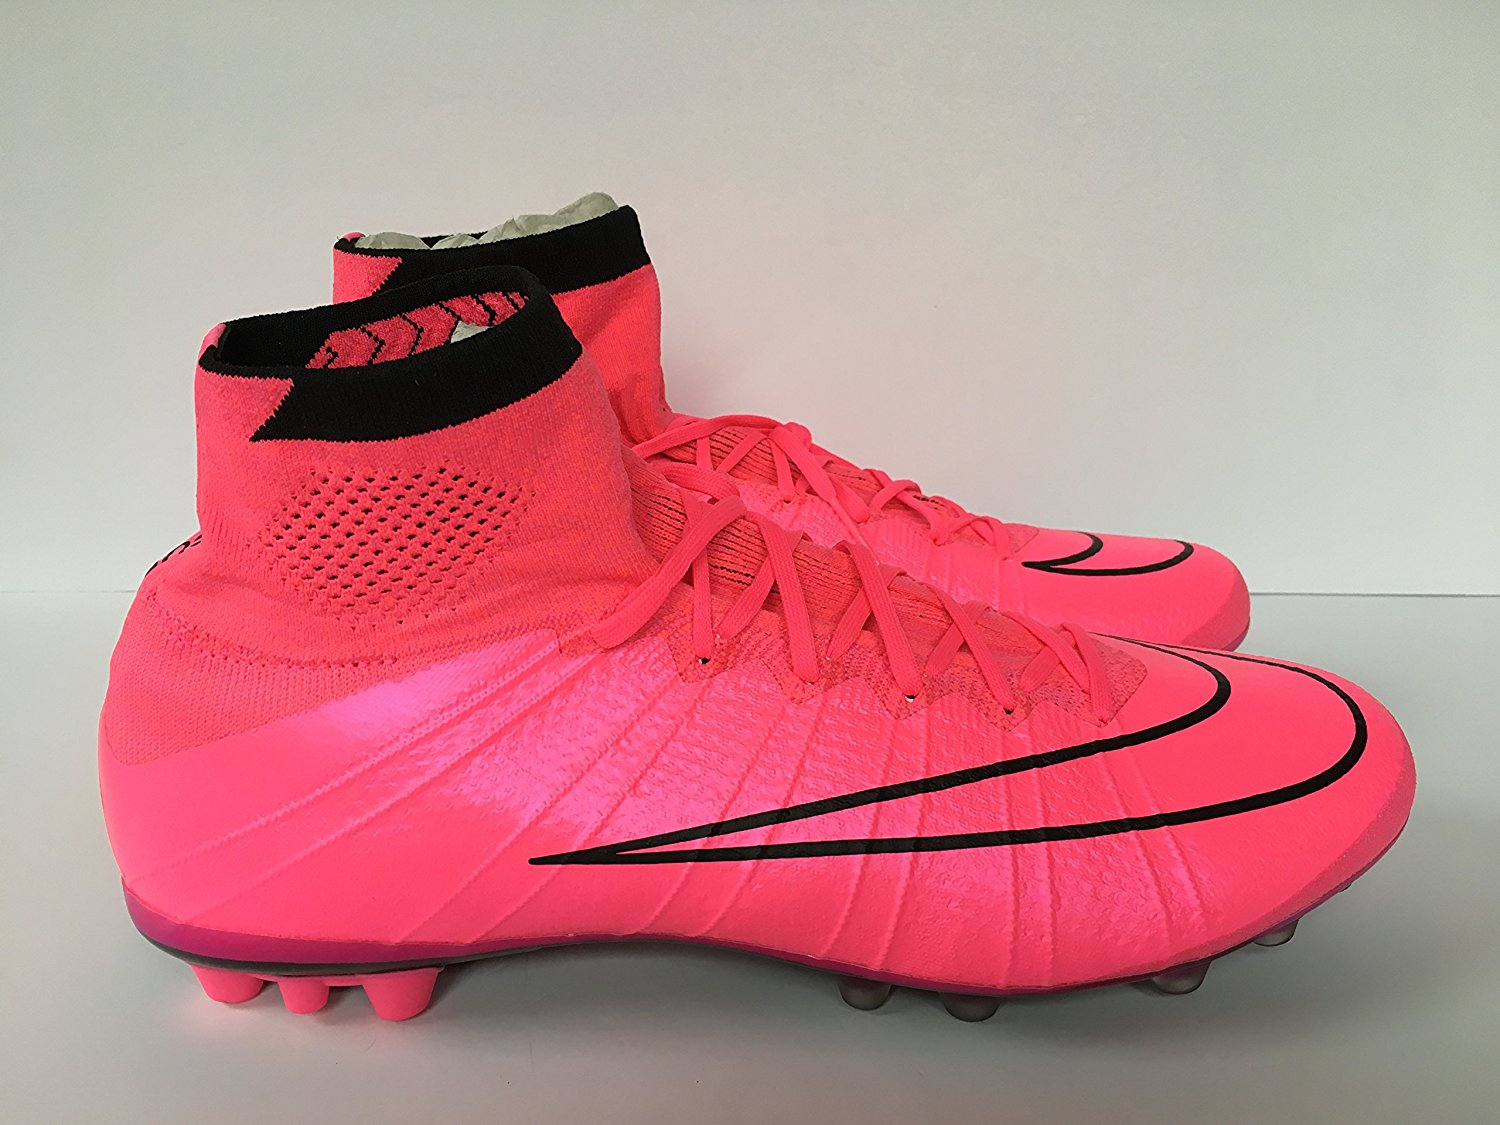 afdfe668a Buy NIKE MERCURIAL SUPERFLY AG-R HYPER PINK-BLACK Sz 11 [717138-660 ...